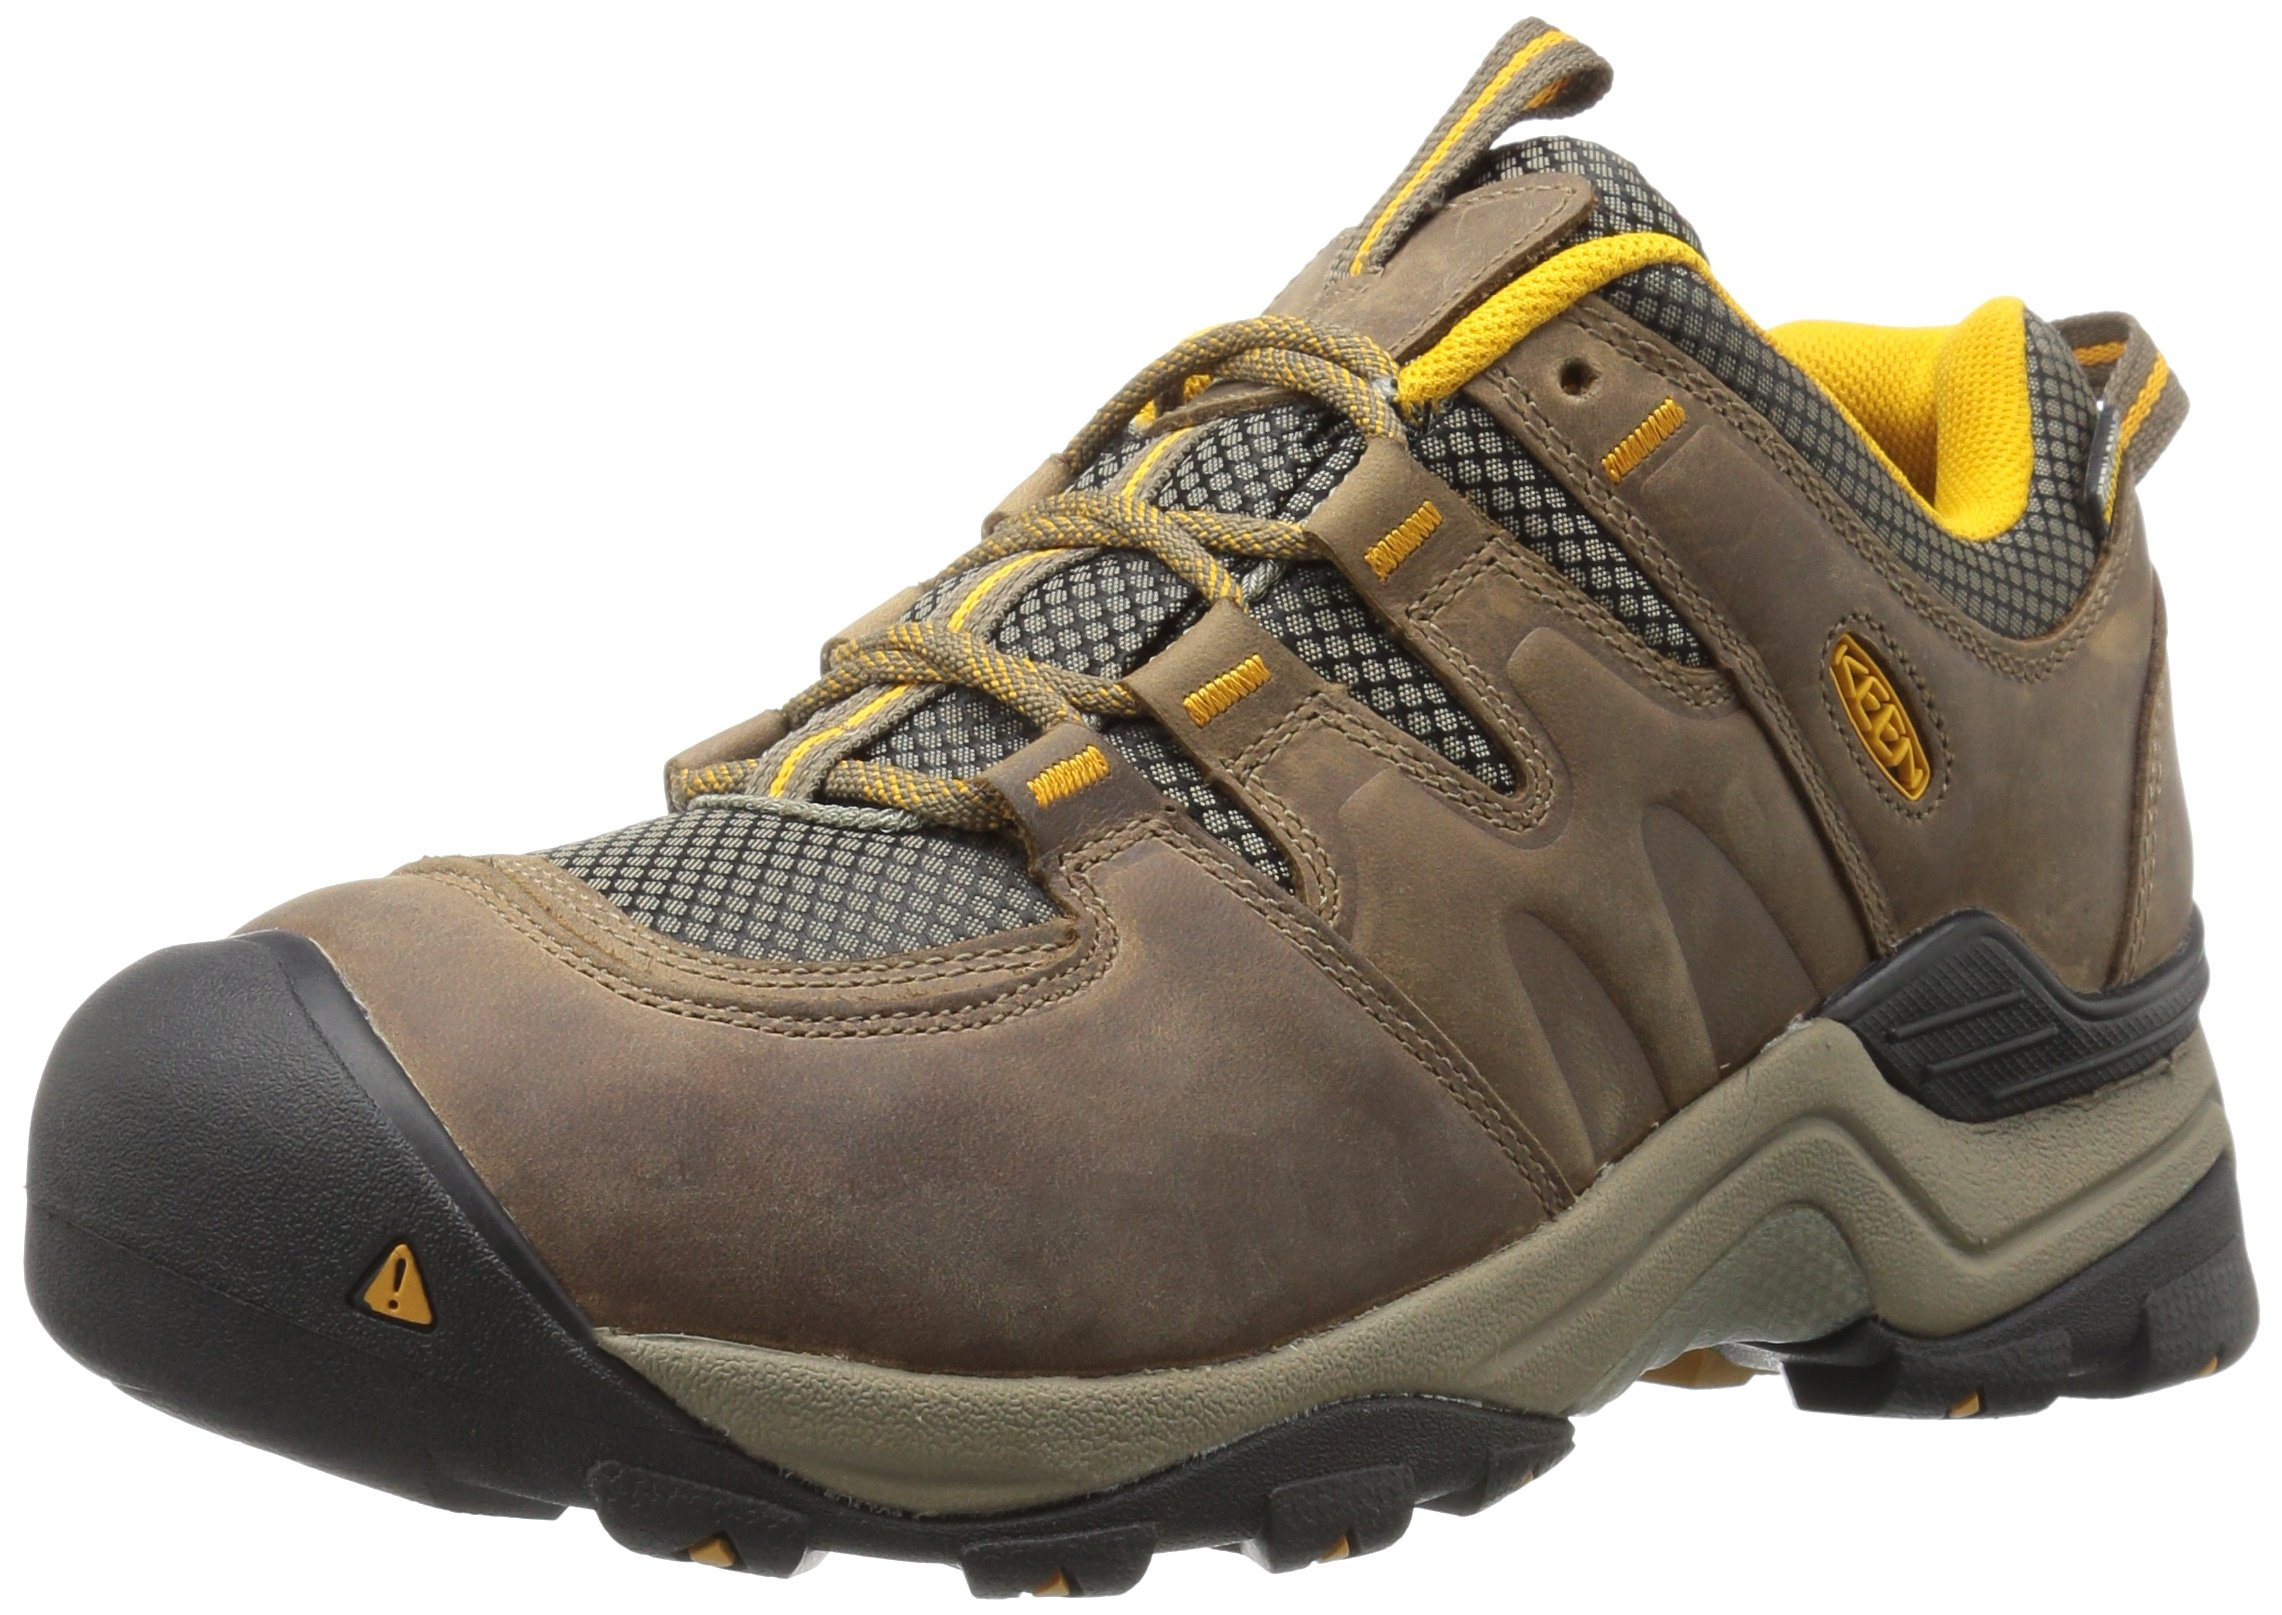 KEEN Men's Gypsum Ii Waterproof Backpacking Boot, Shiitake/Golden Yellow, 9.5 M US